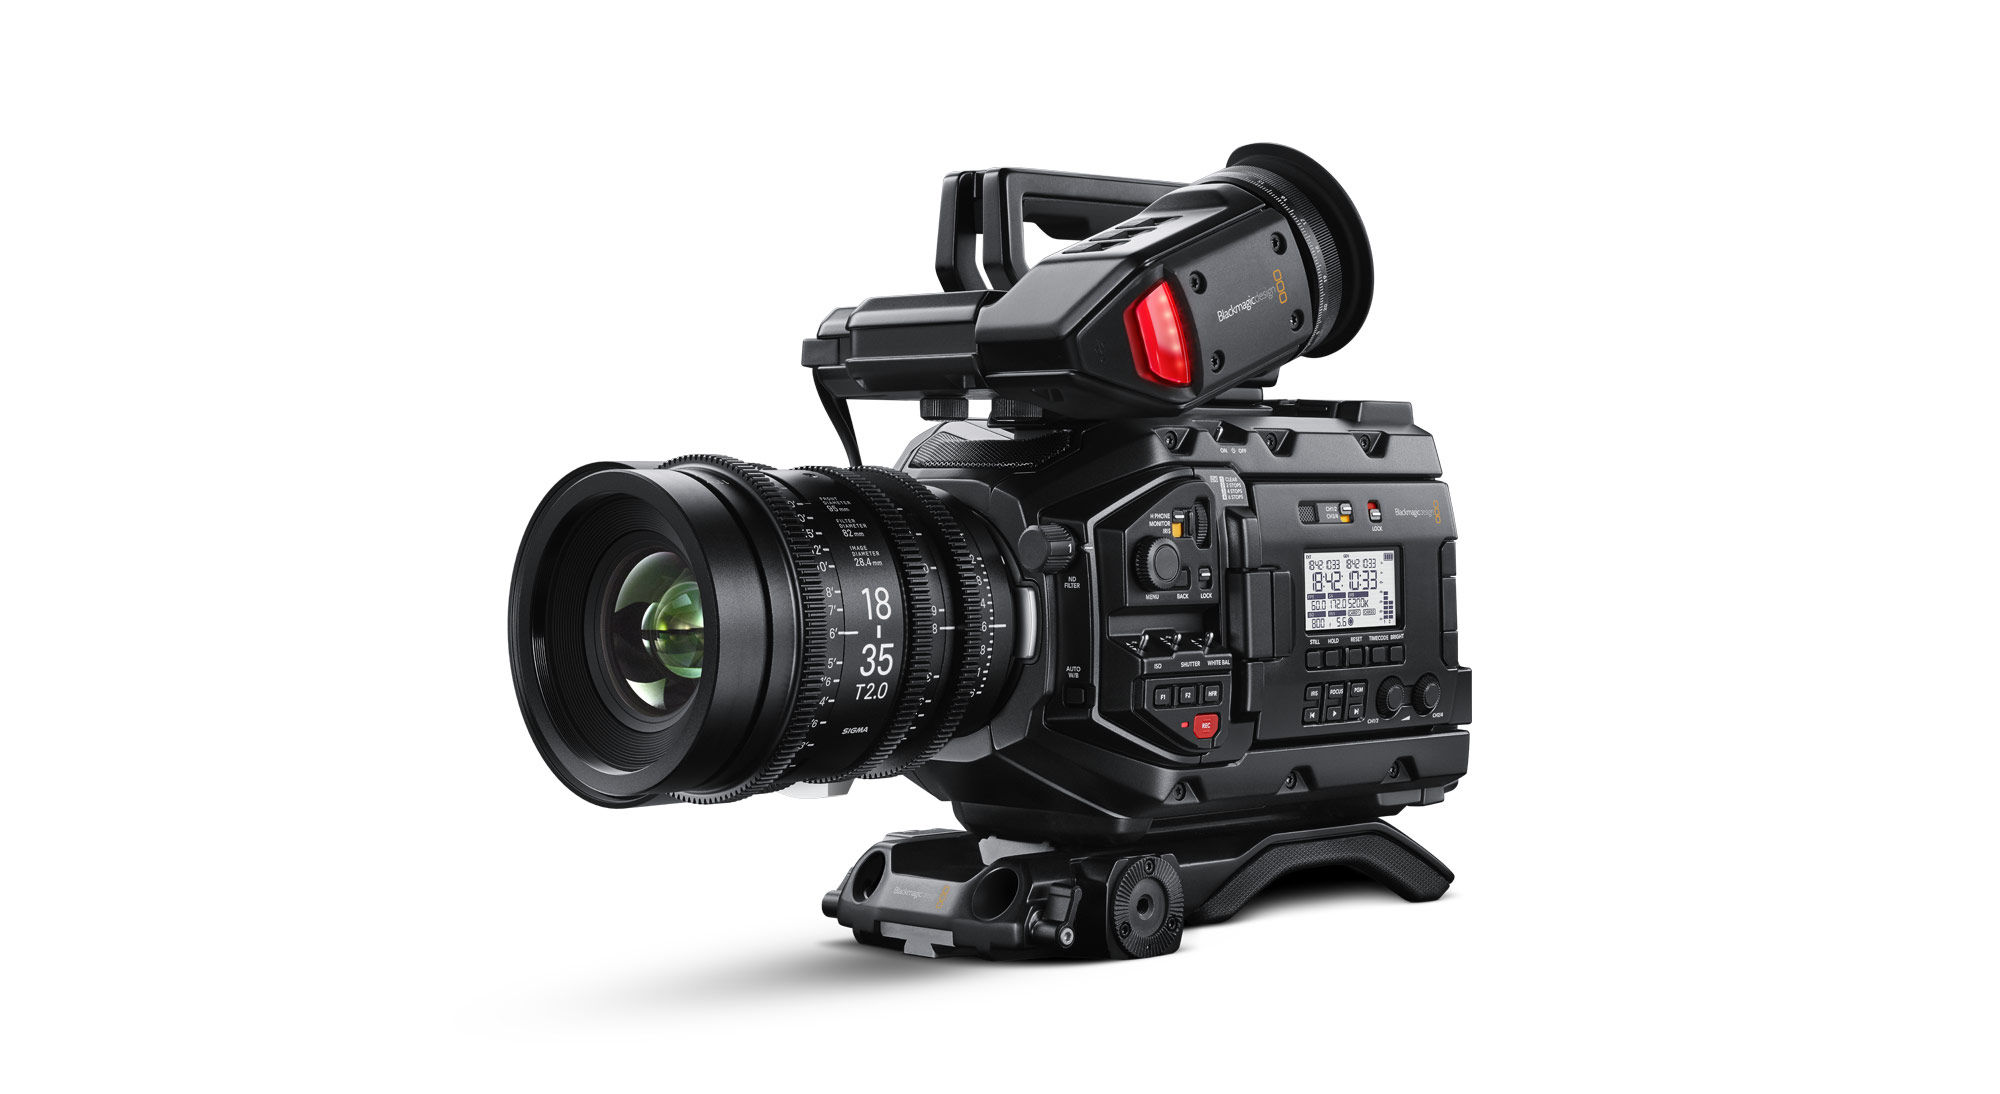 blackmagic-ursa-mini-pro@2x_recompress.jpg